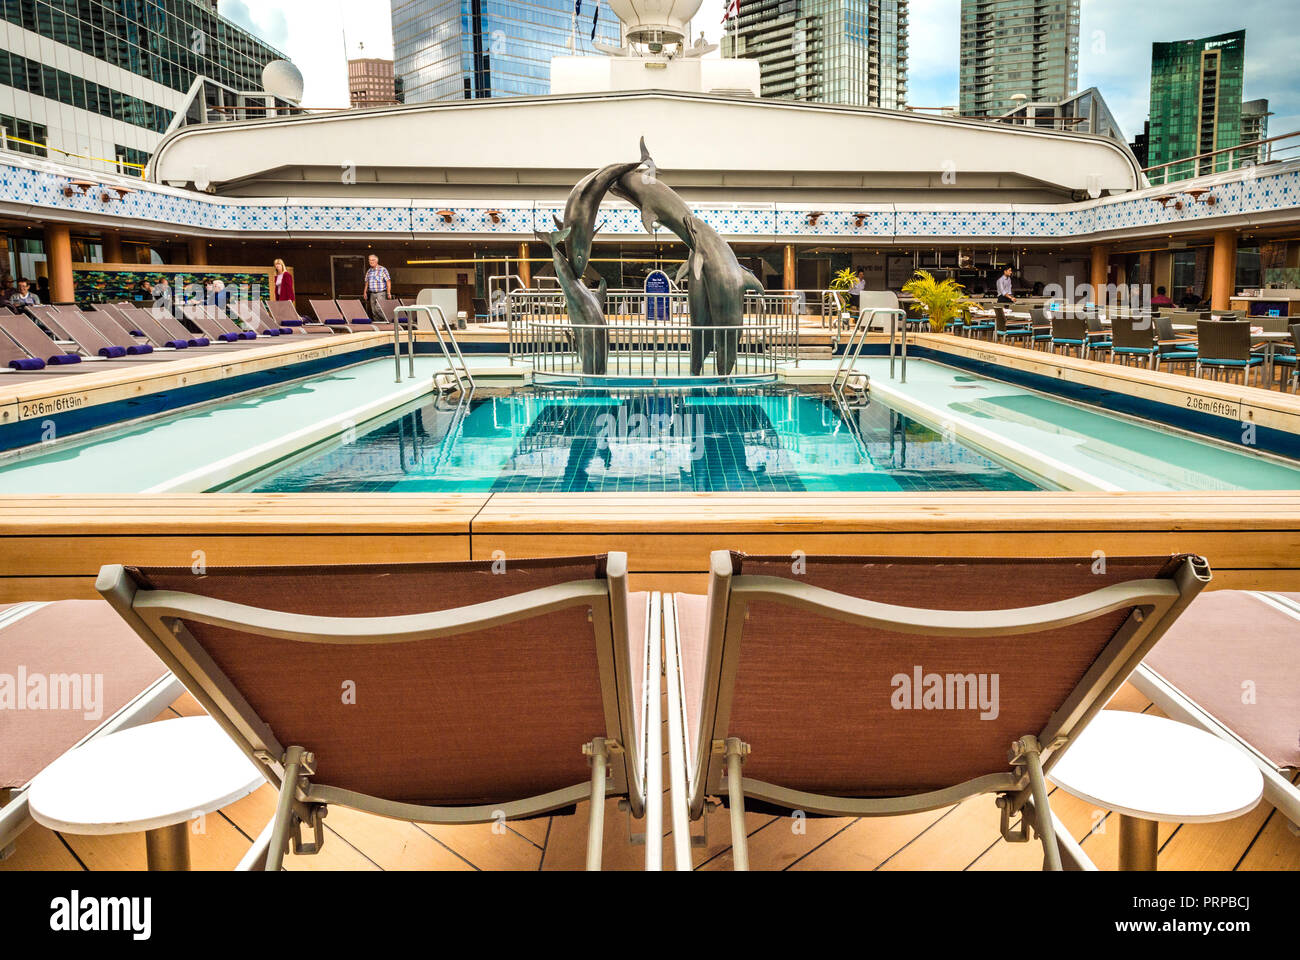 Pool With R Lido Deck Swimming Pool Under Open Retractable Magradome Roof The